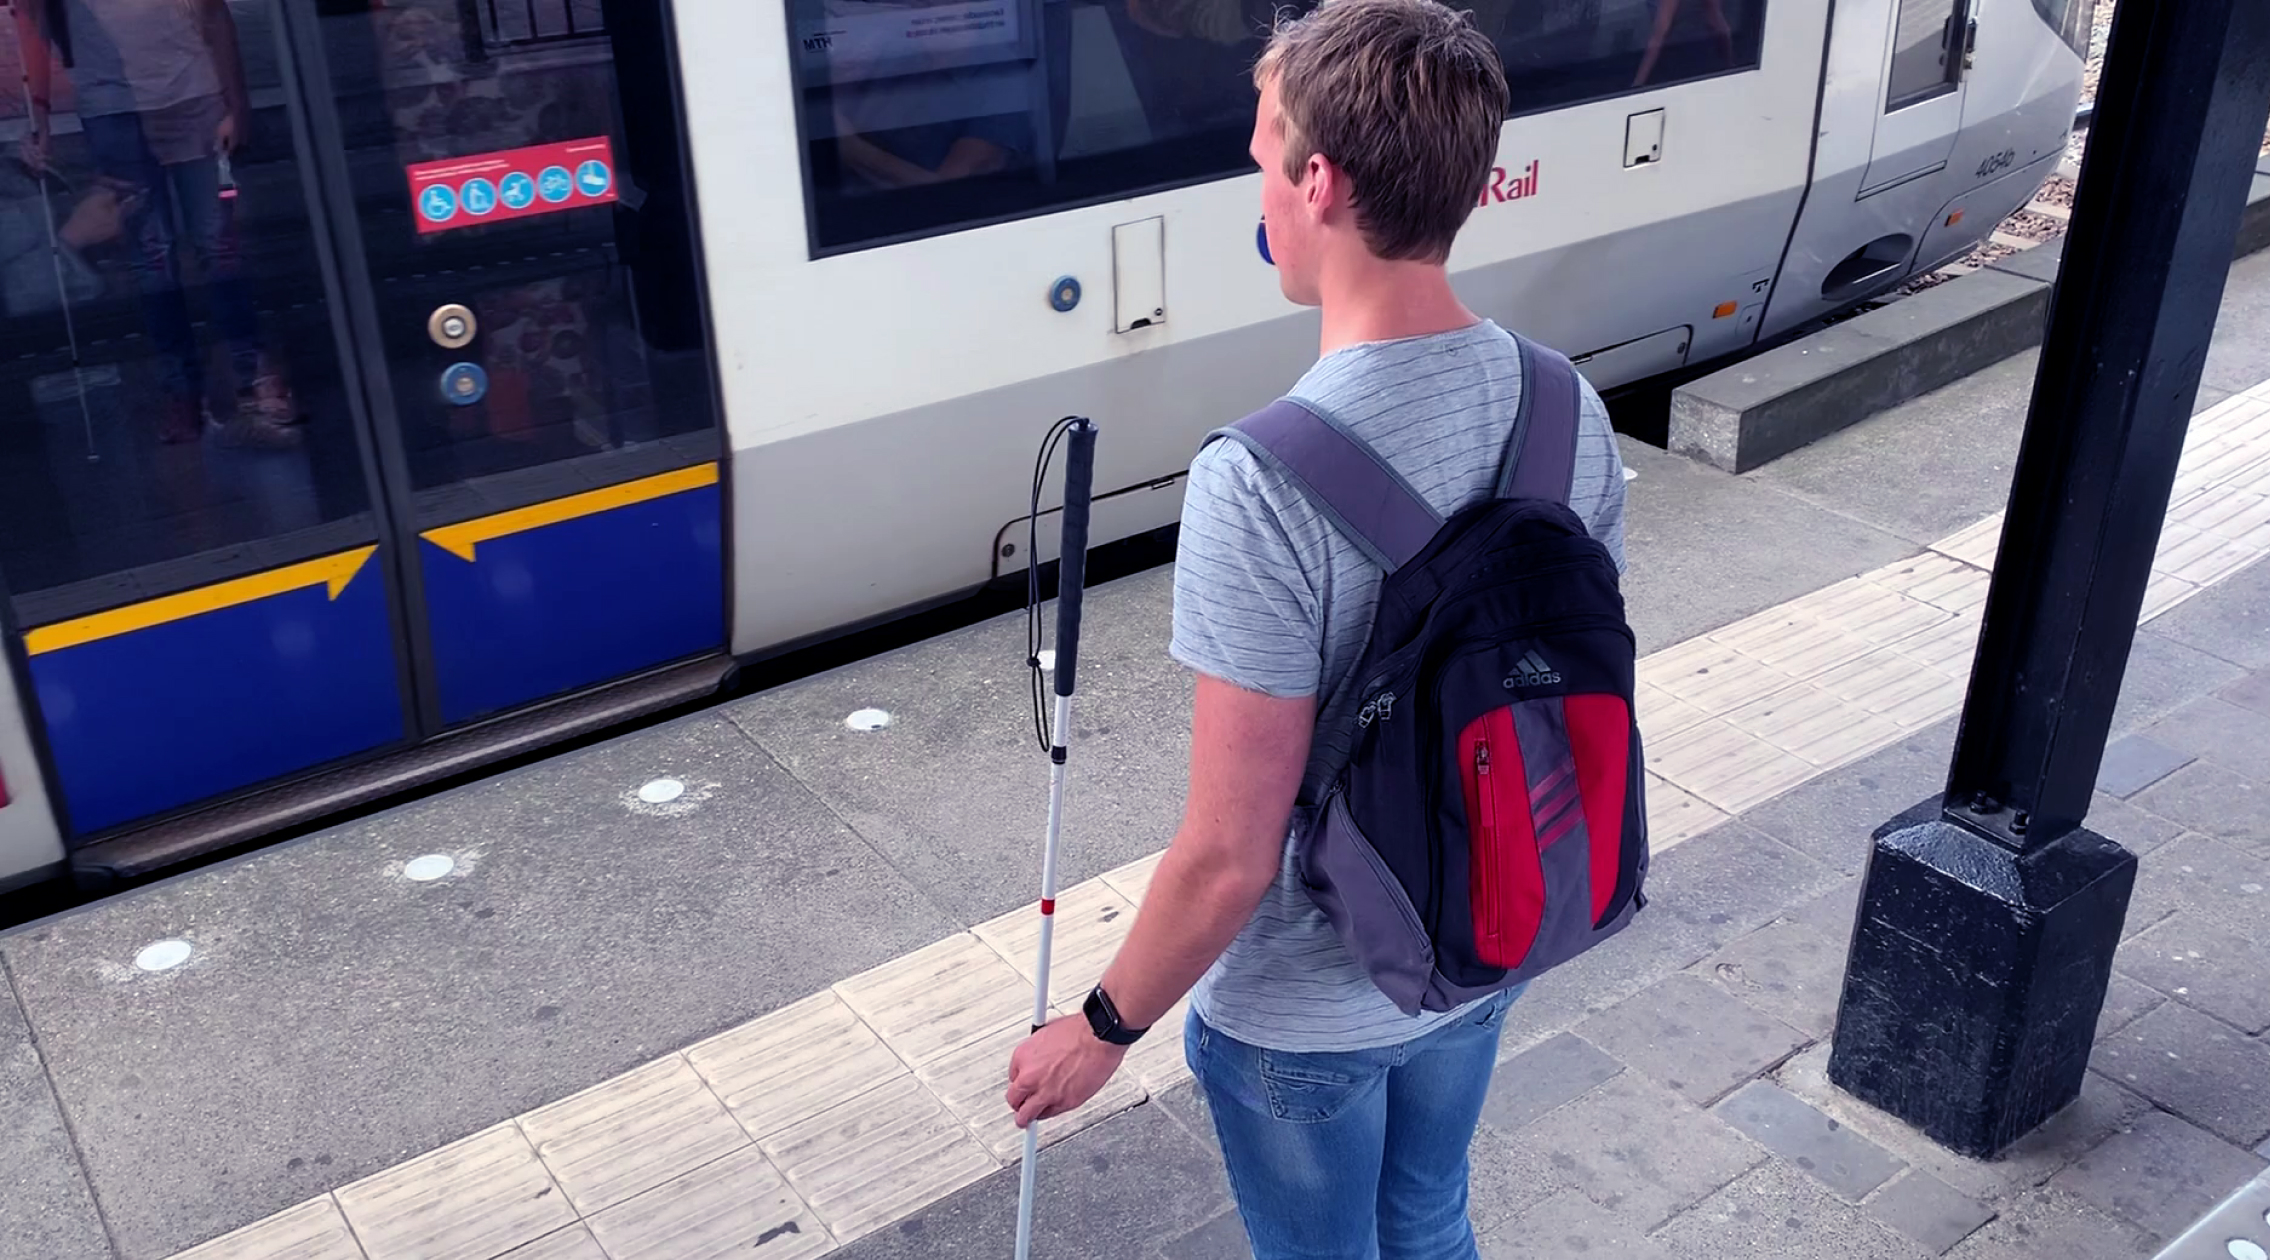 Jesse standing in front of a train at the station holding a cane.